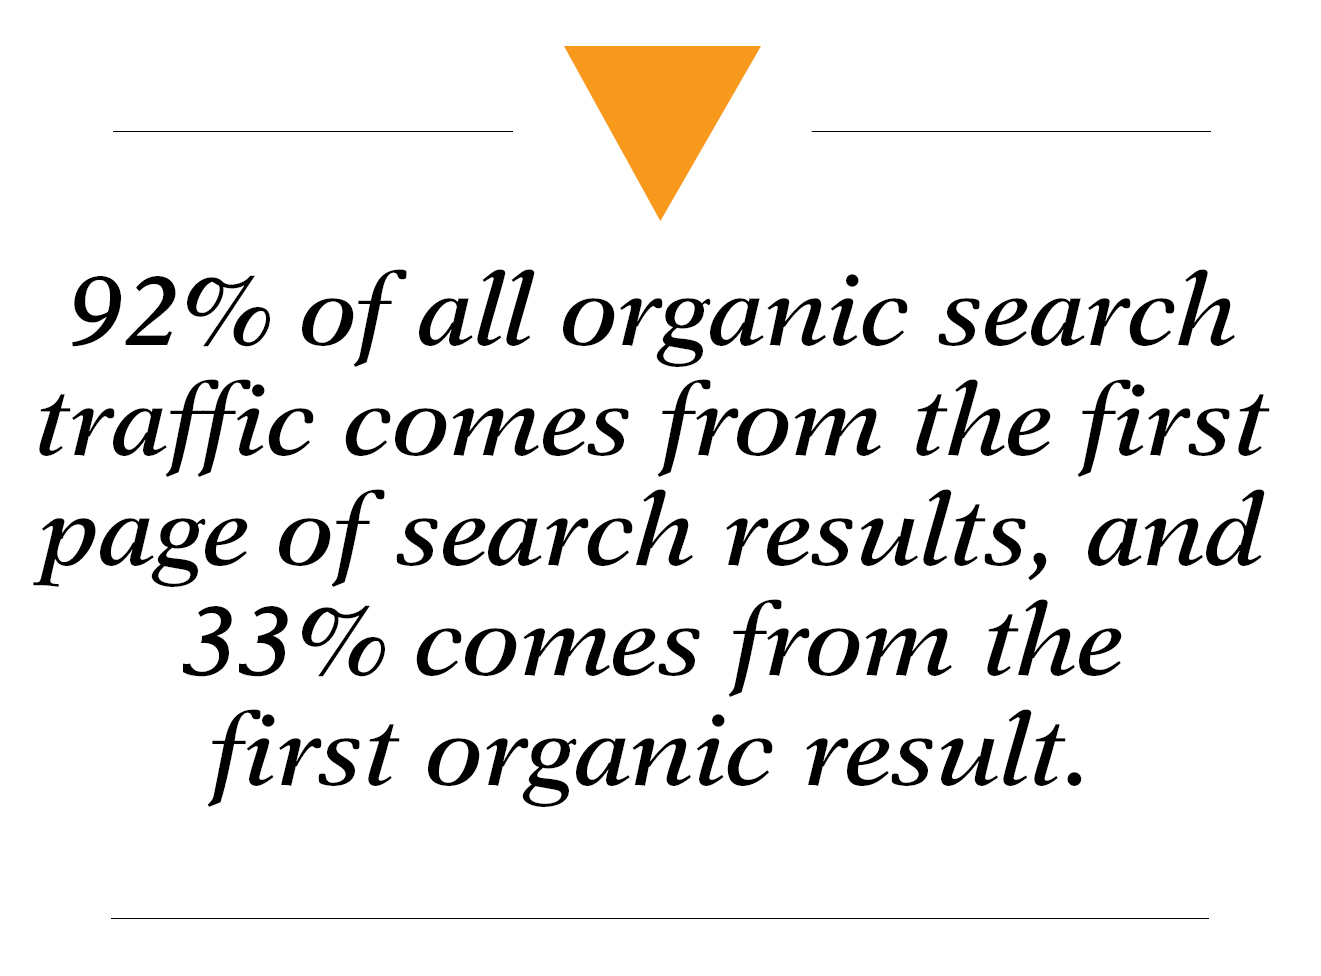 92% of all organic search traffic comes from the first page of search results, and 33% comes from the first organic result - search engine optimization